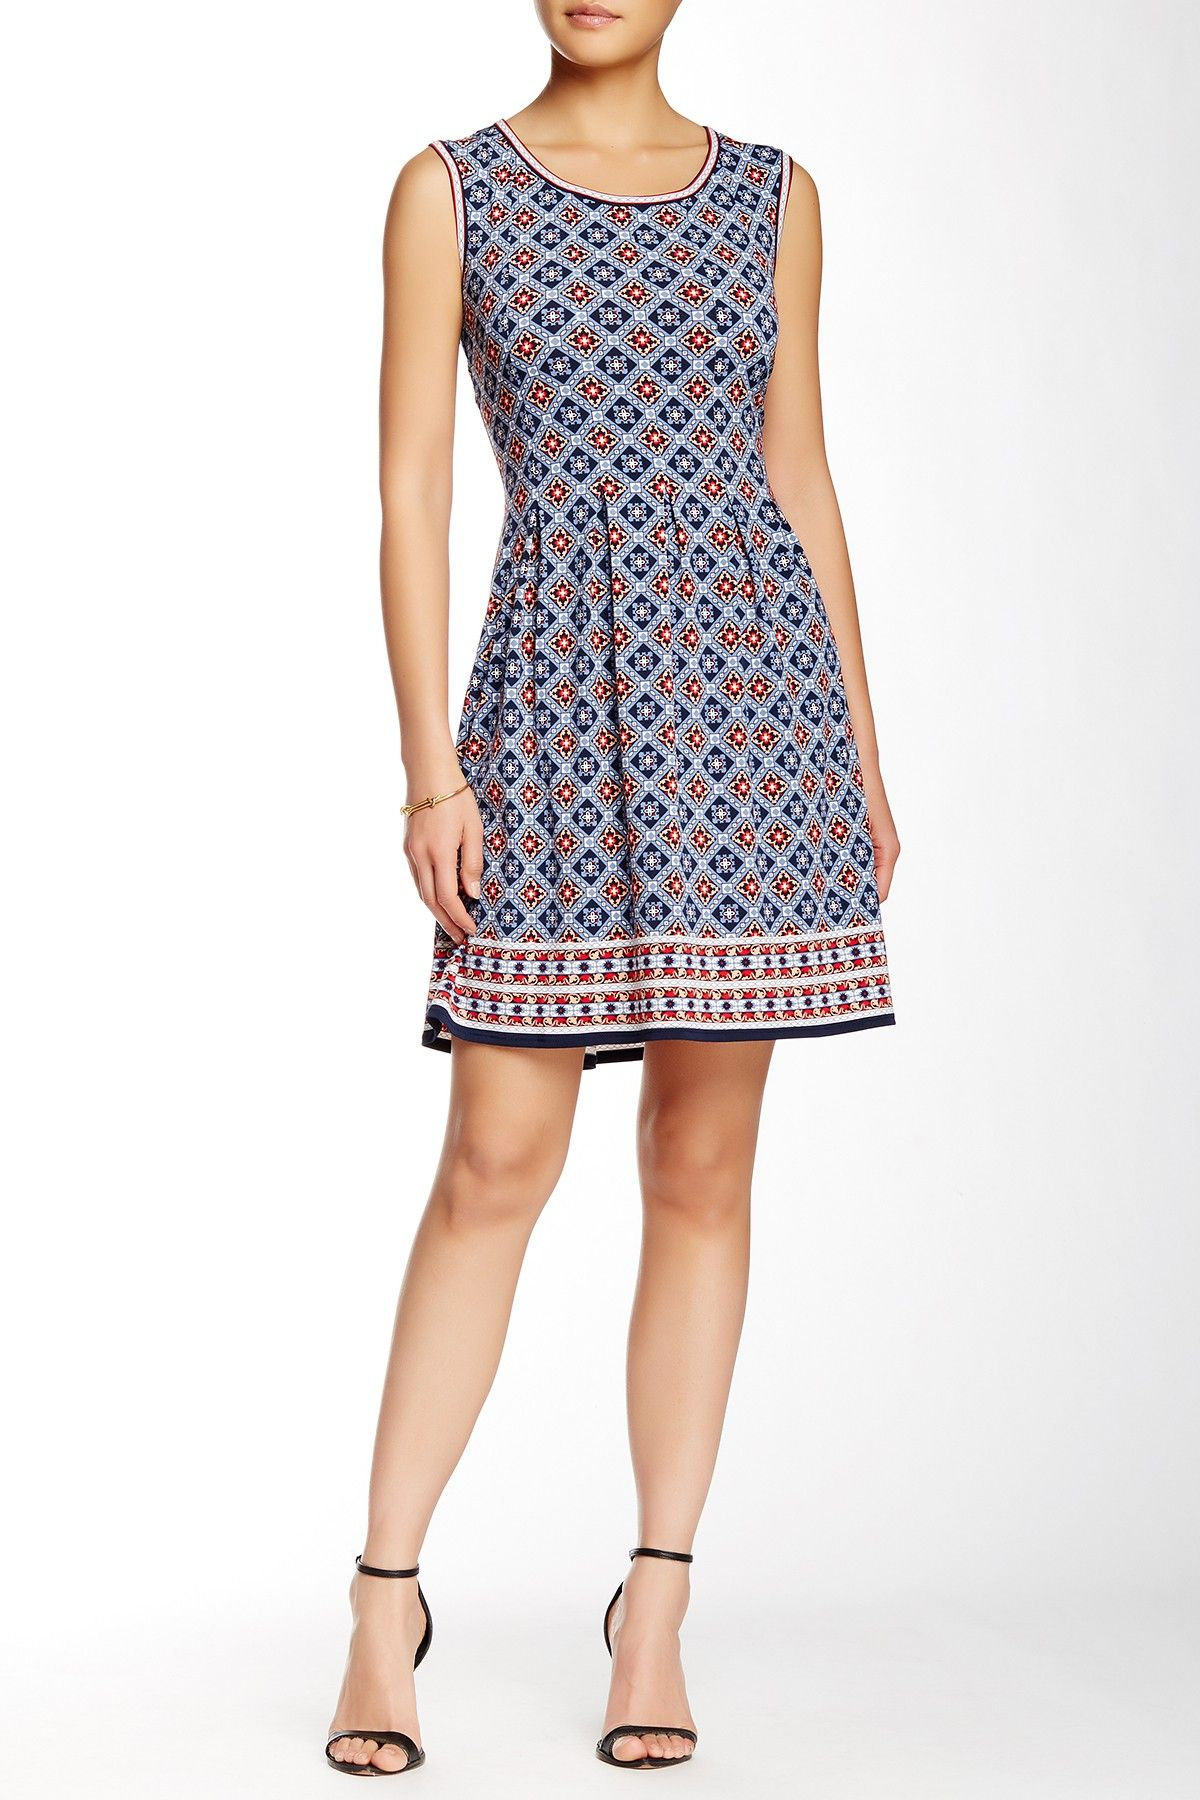 4e08692a3c2d Max Studio - Print Fit & Flare Dress at Nordstrom Rack. Free Shipping on  orders over $100.